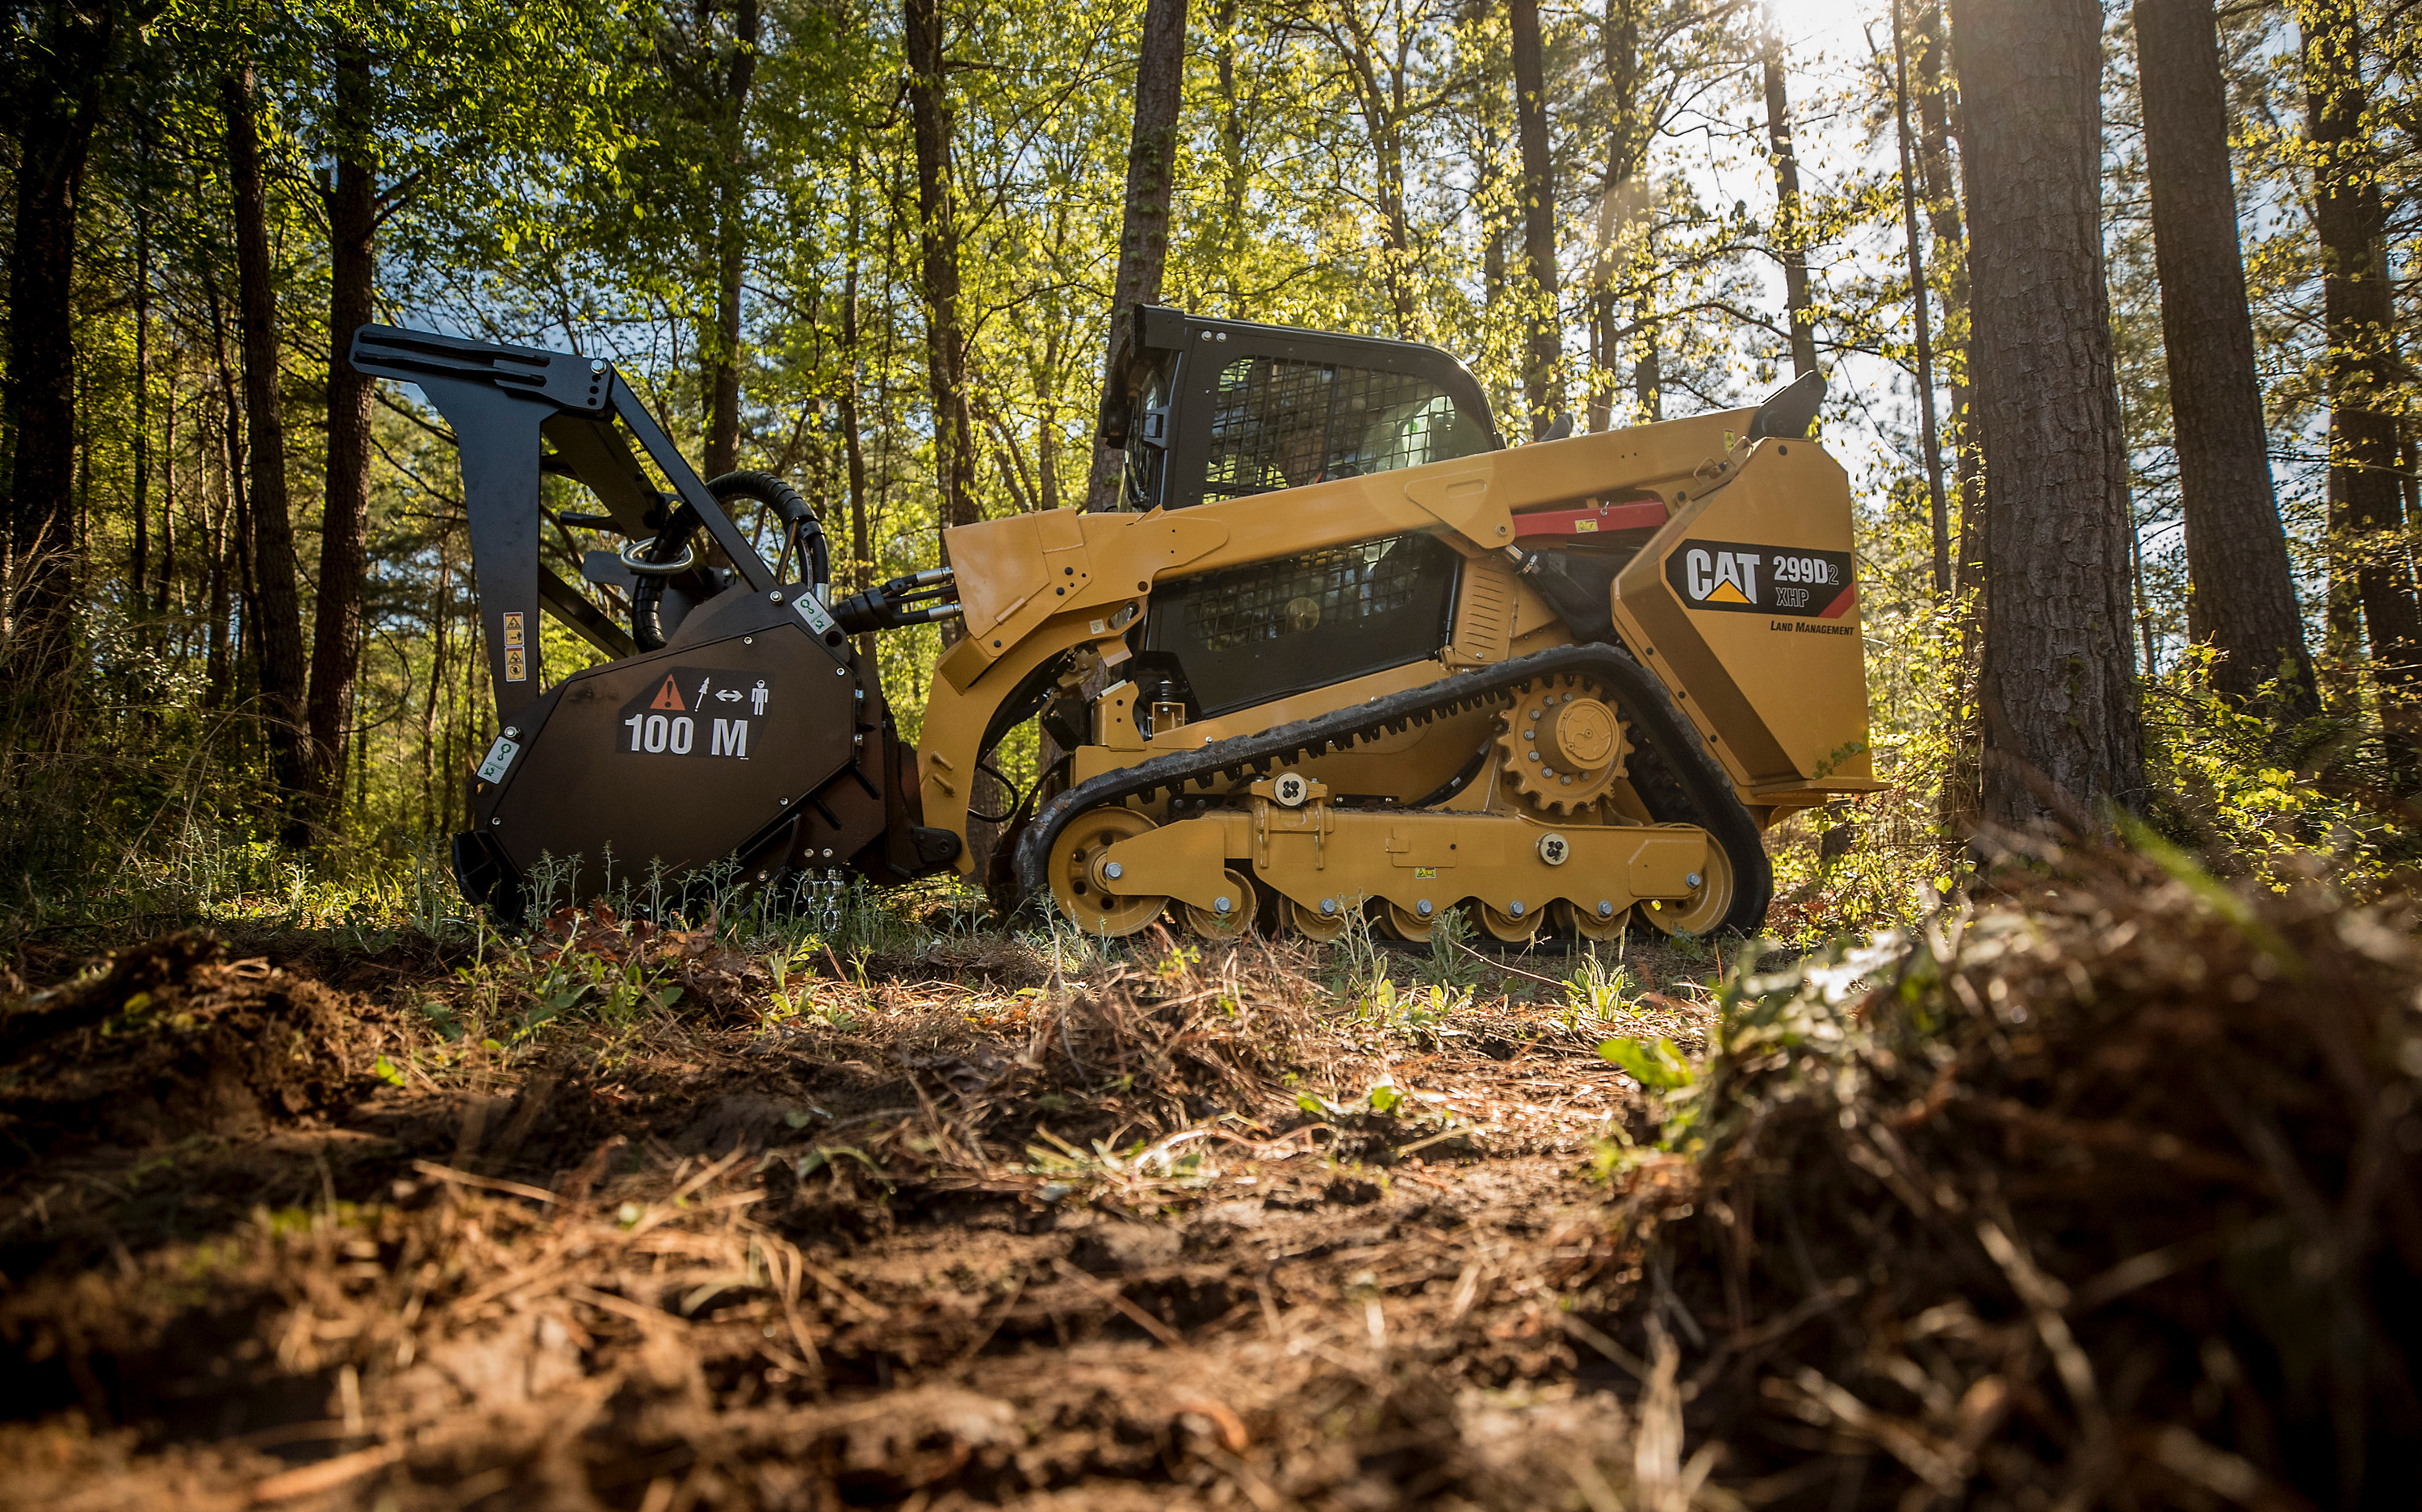 The Cat 299D2 XHP land management compact track loader (Photo: Caterpillar)